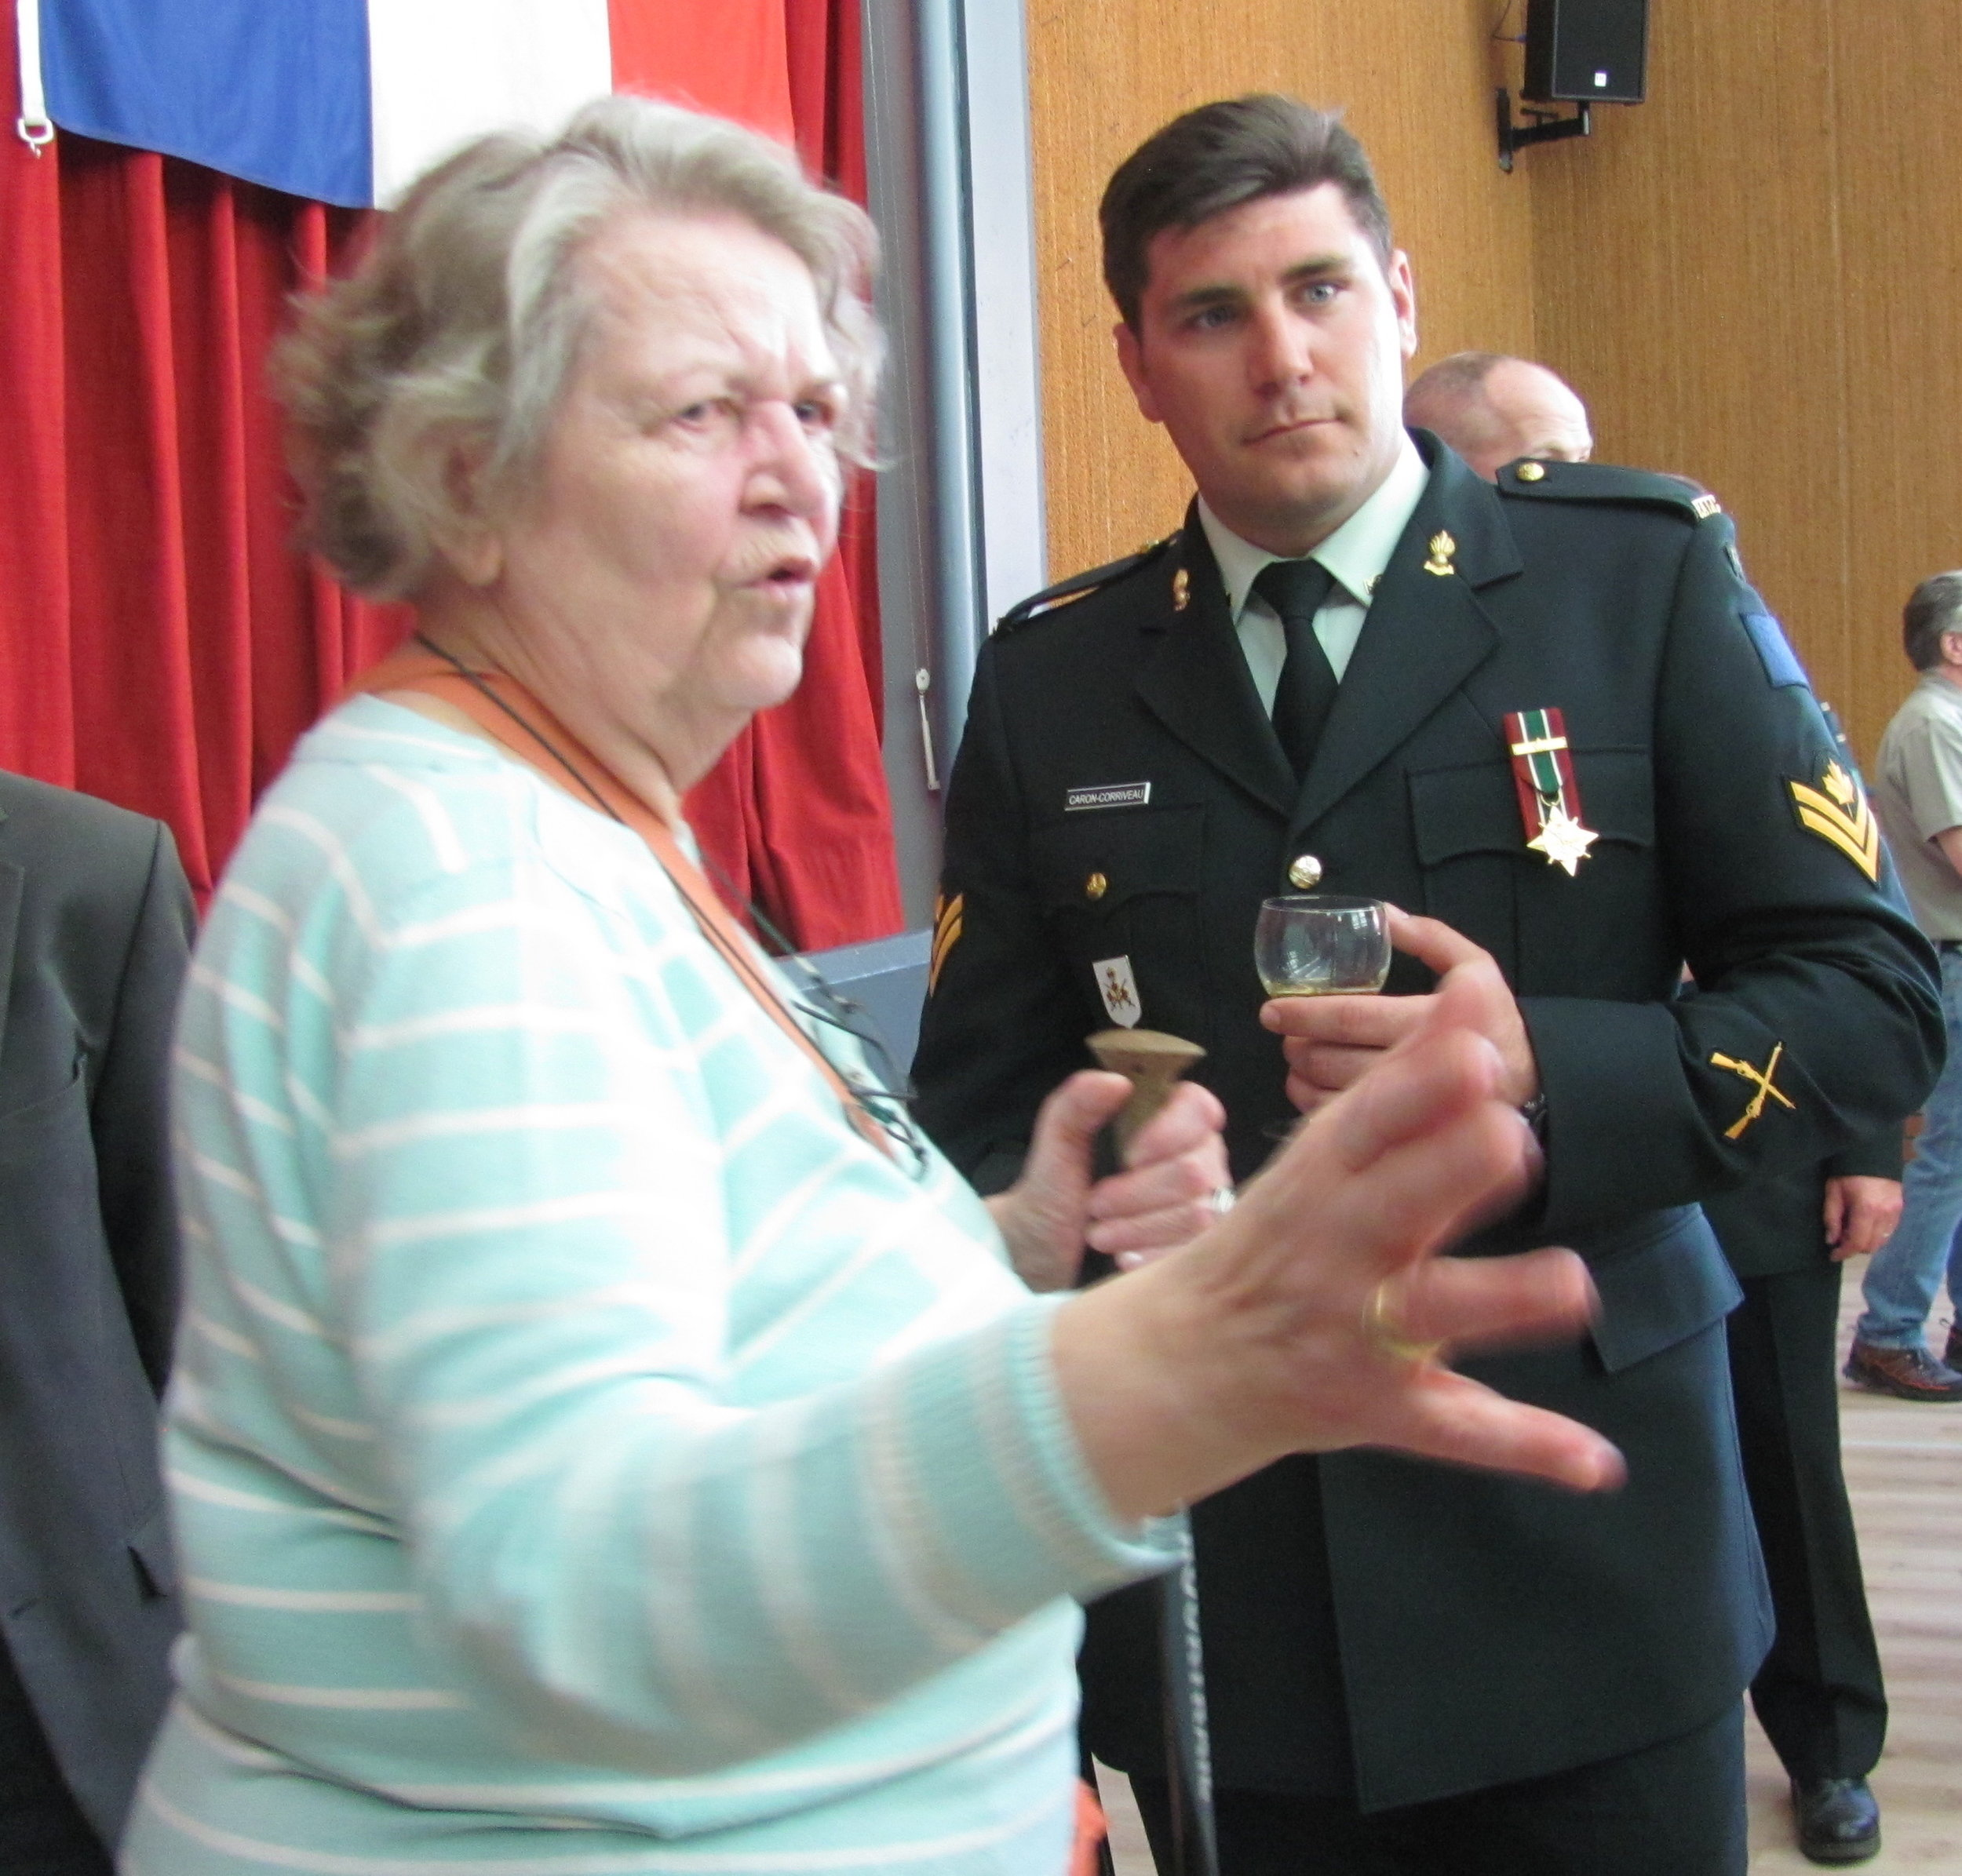 Master Bombardier Caron-Corriveau of 5e RALC speaks with local resident of Thelus at the photo exhibit.